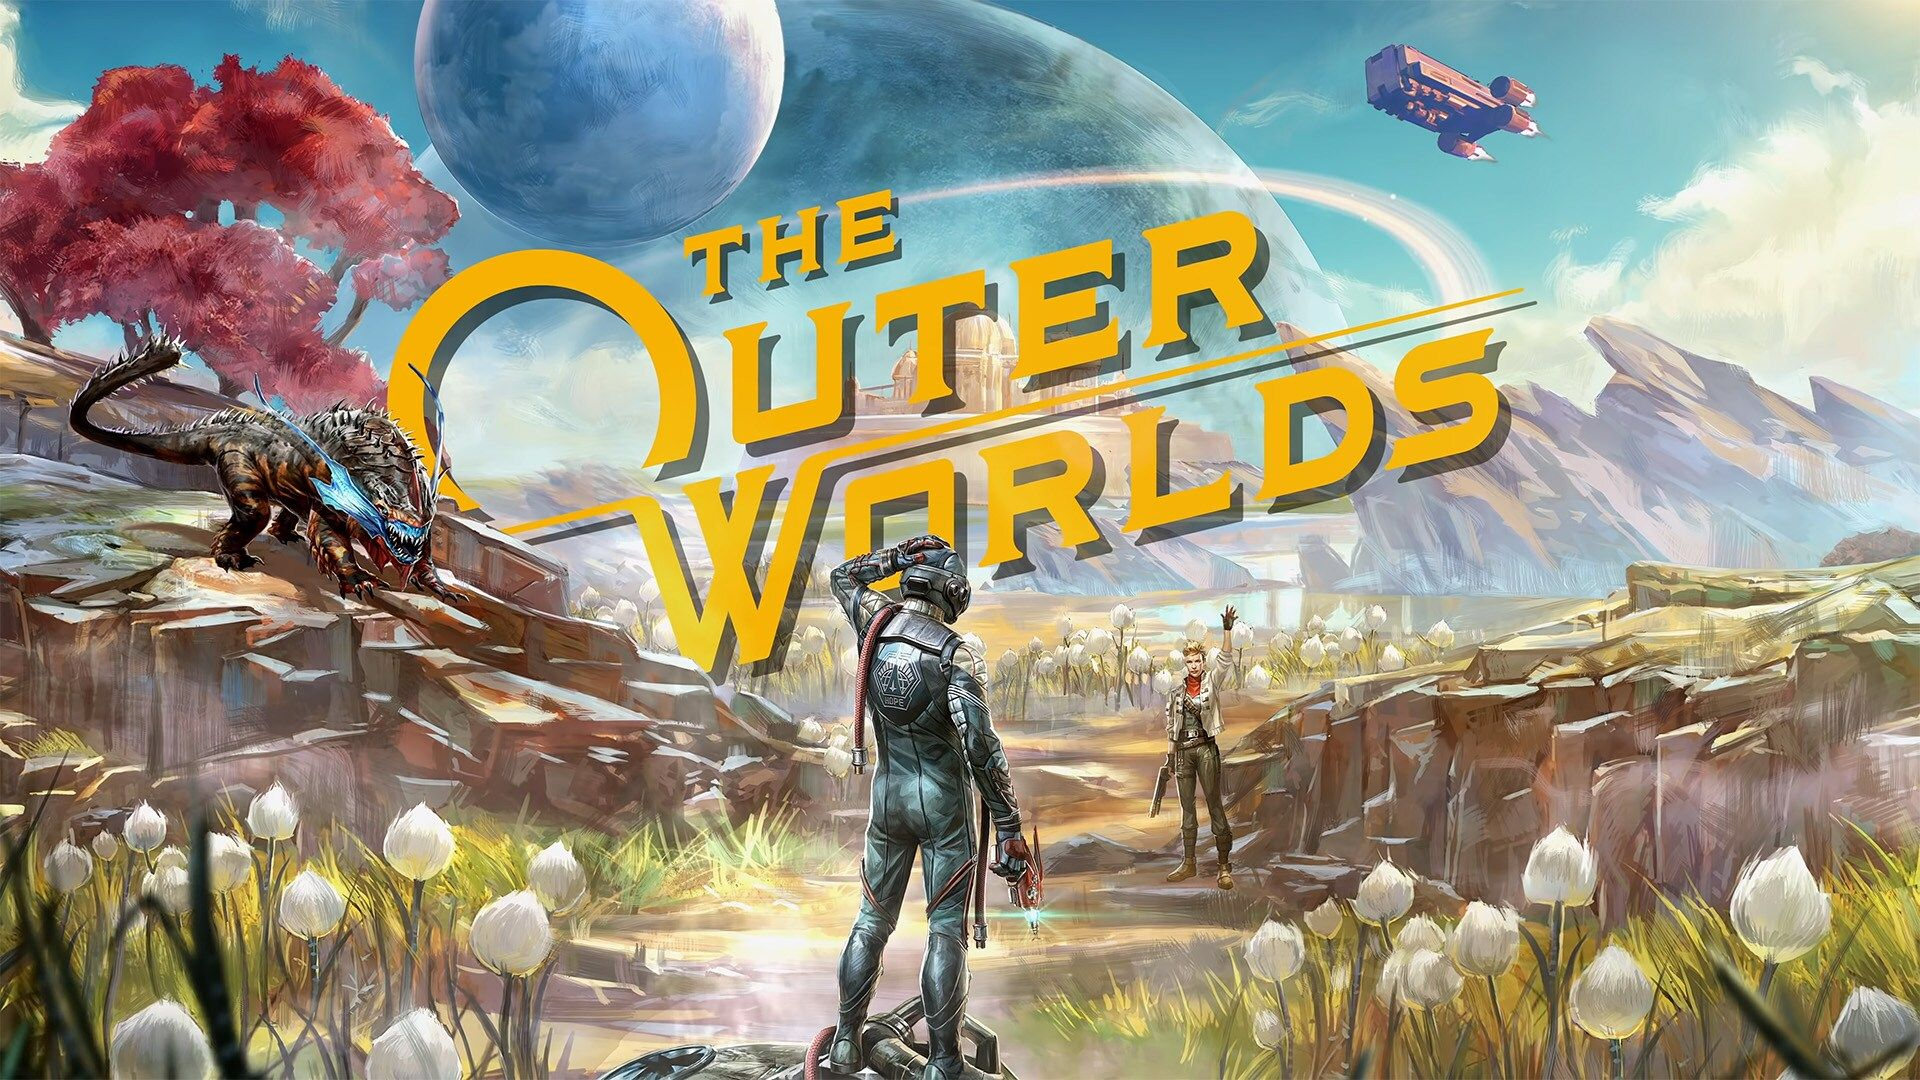 The Outer Worlds Wallpaper